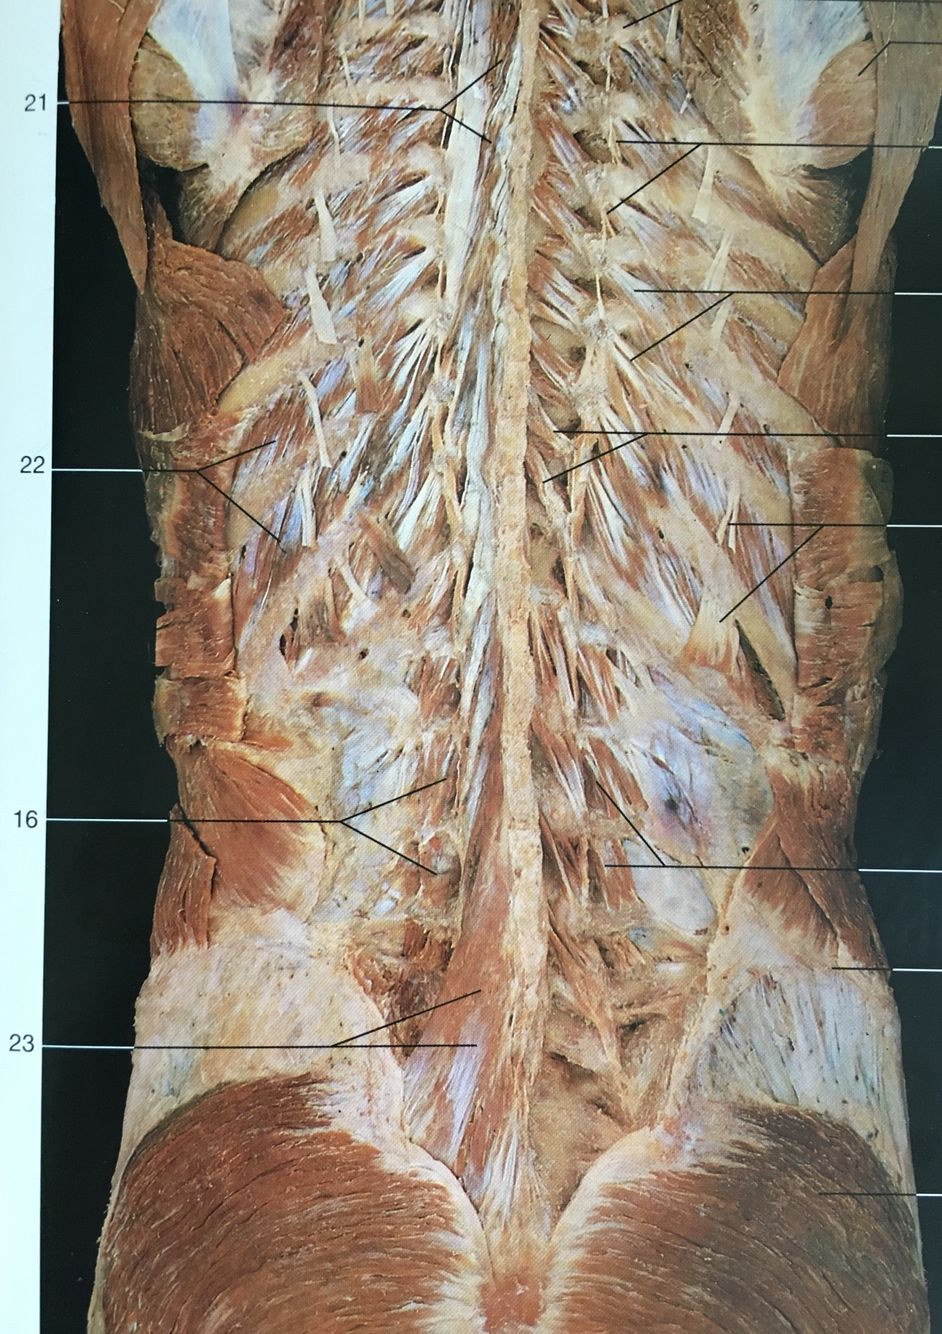 Multifidus muscle anatomy